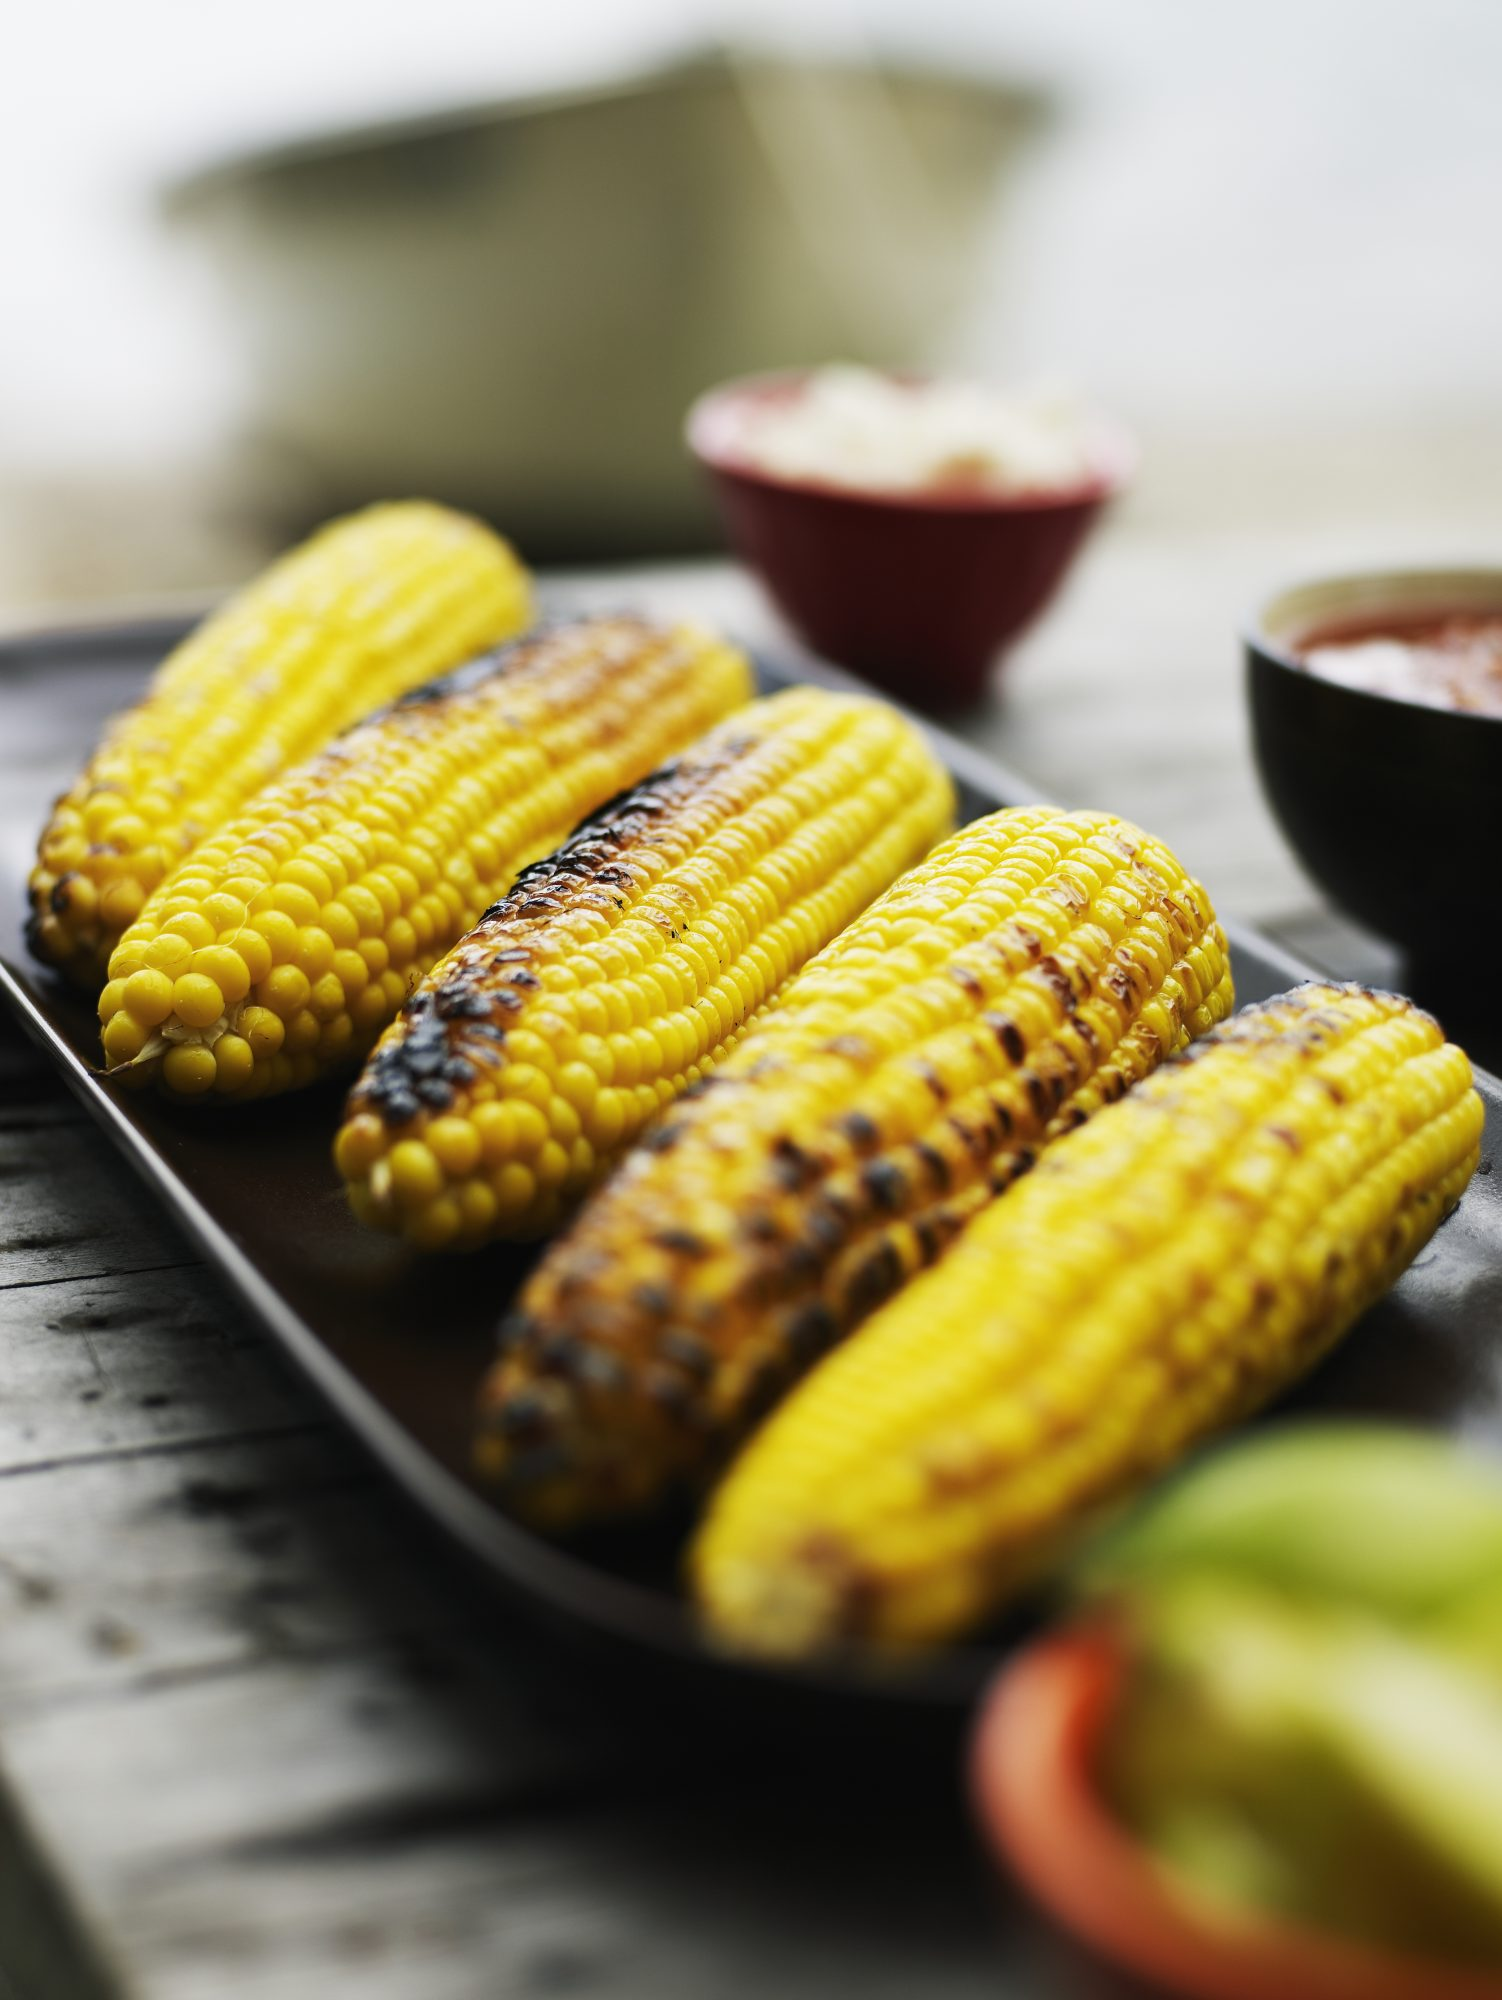 Best: Corn on the cob